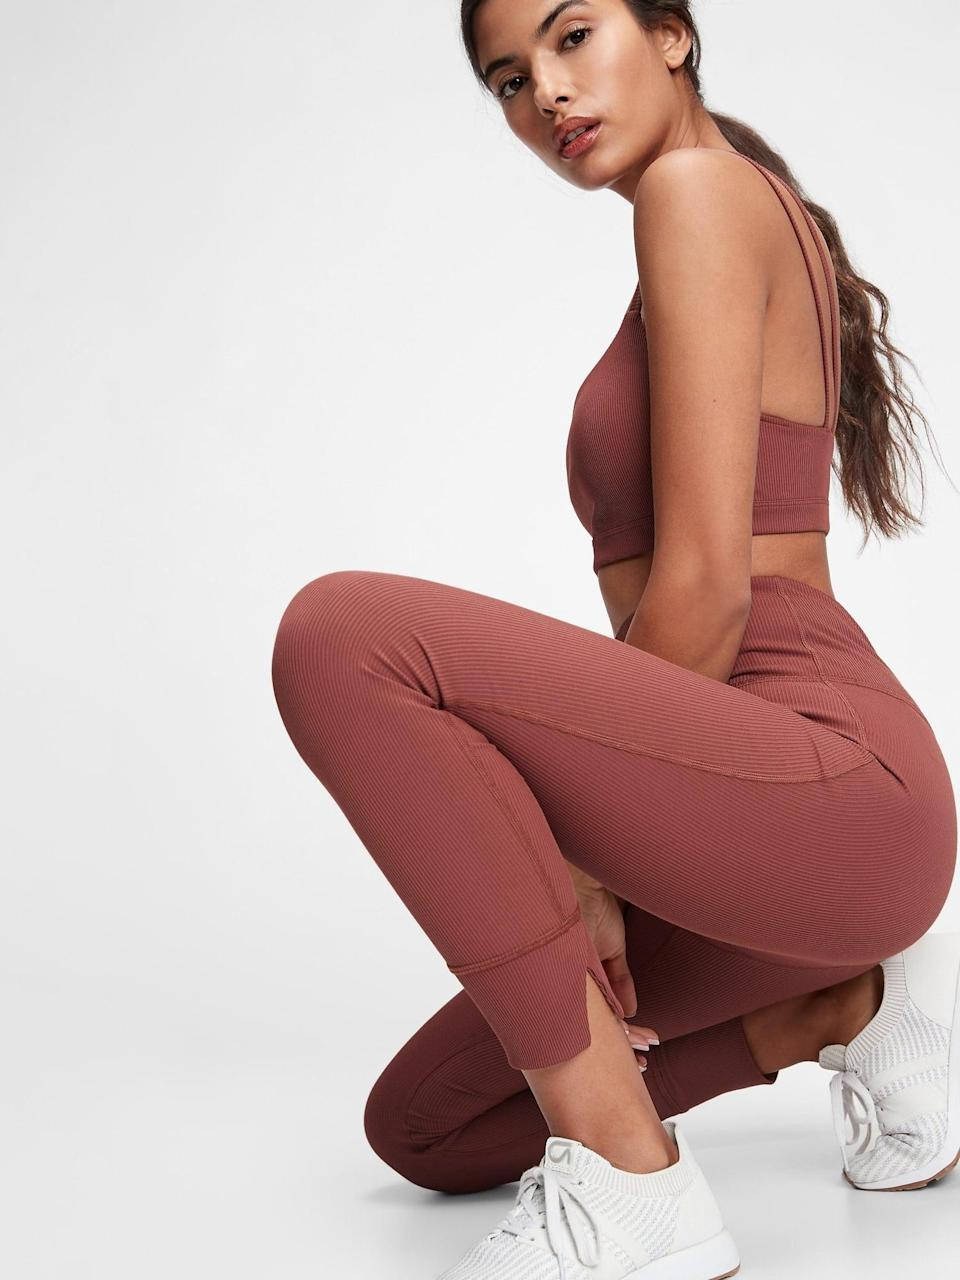 <p>Whether you're into a terracotta or chocolate shade, brown is the versatile neutral we need right now. It manages to be warm, inviting, and elegant all at the same time. We love the look of this <span>GapFit High Waisted Ribbed Blackout Leggings</span> ($54, originally $60) and matching <span>Blackout Ribbed Low Impact Sports Bra</span> ($31, originally $35).</p>